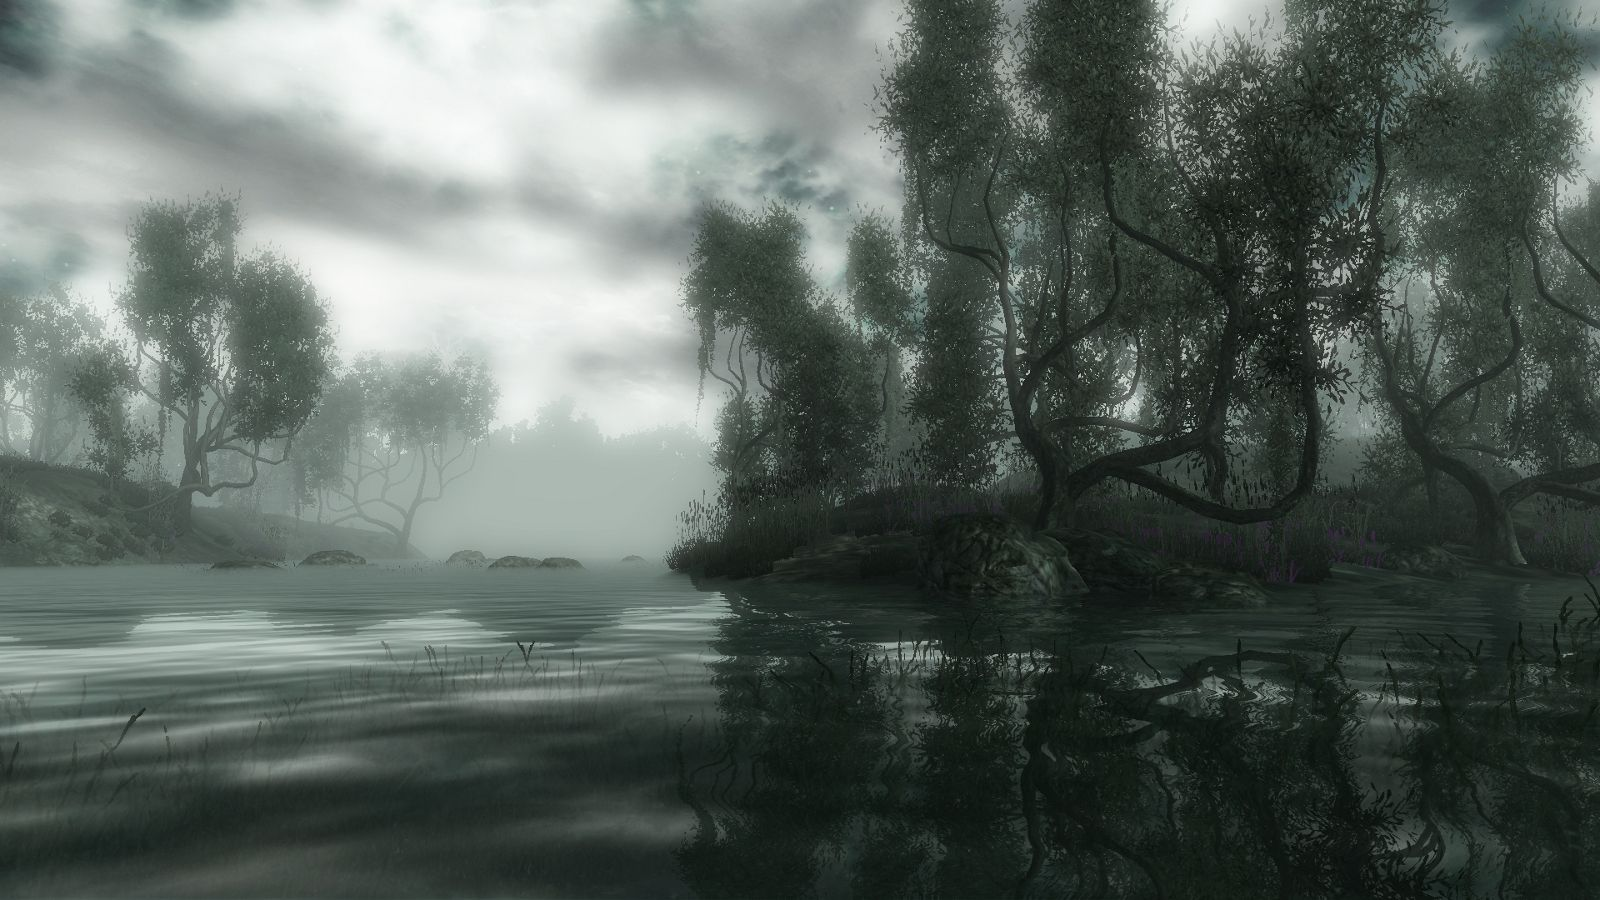 hd oblivion wallpaper pack at oblivion nexus - mods and community